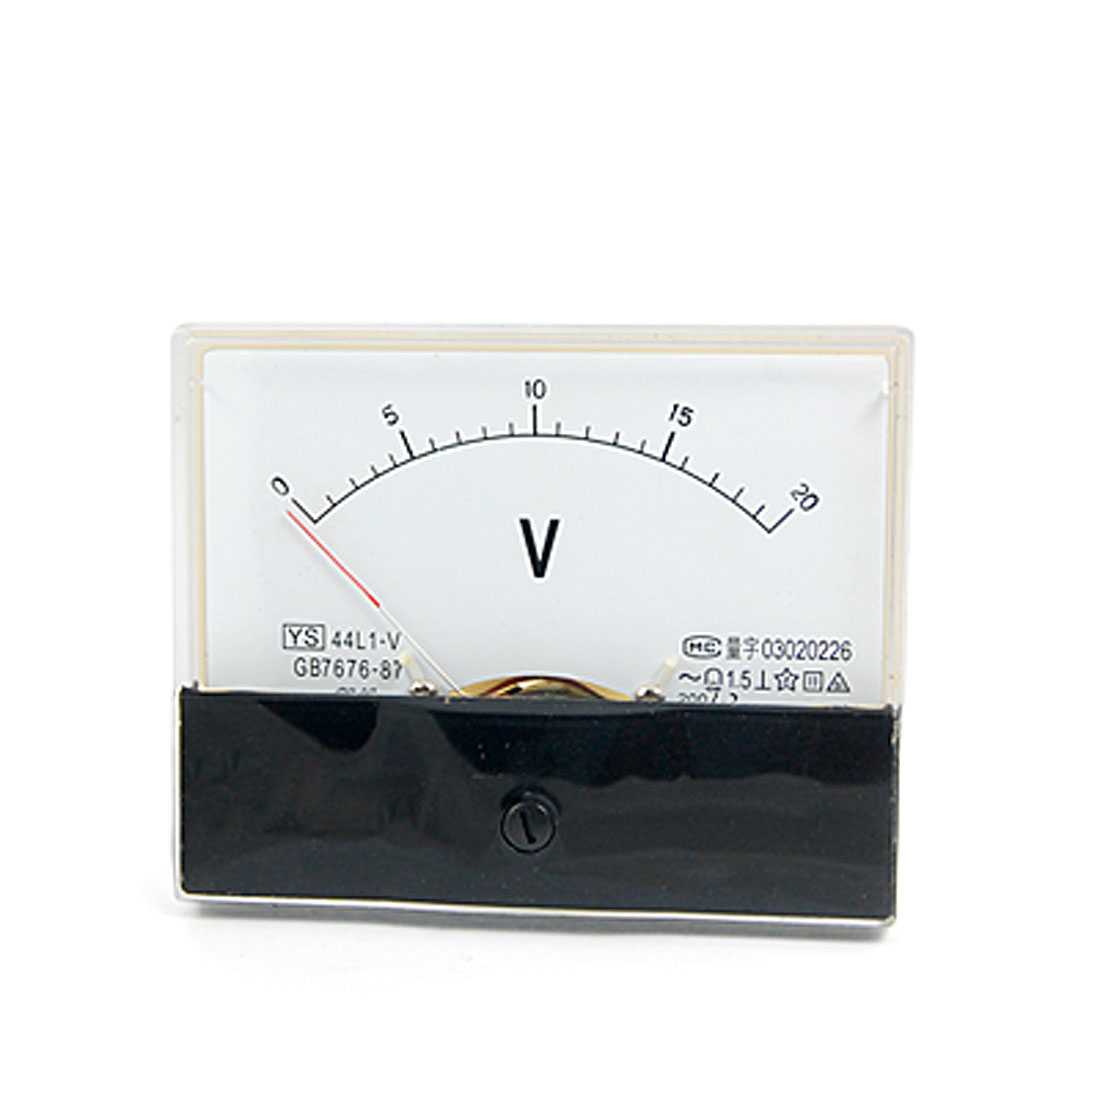 44L1-V AC 0-20V Rectangle Analog Panel Mount Volt Meter Gauge